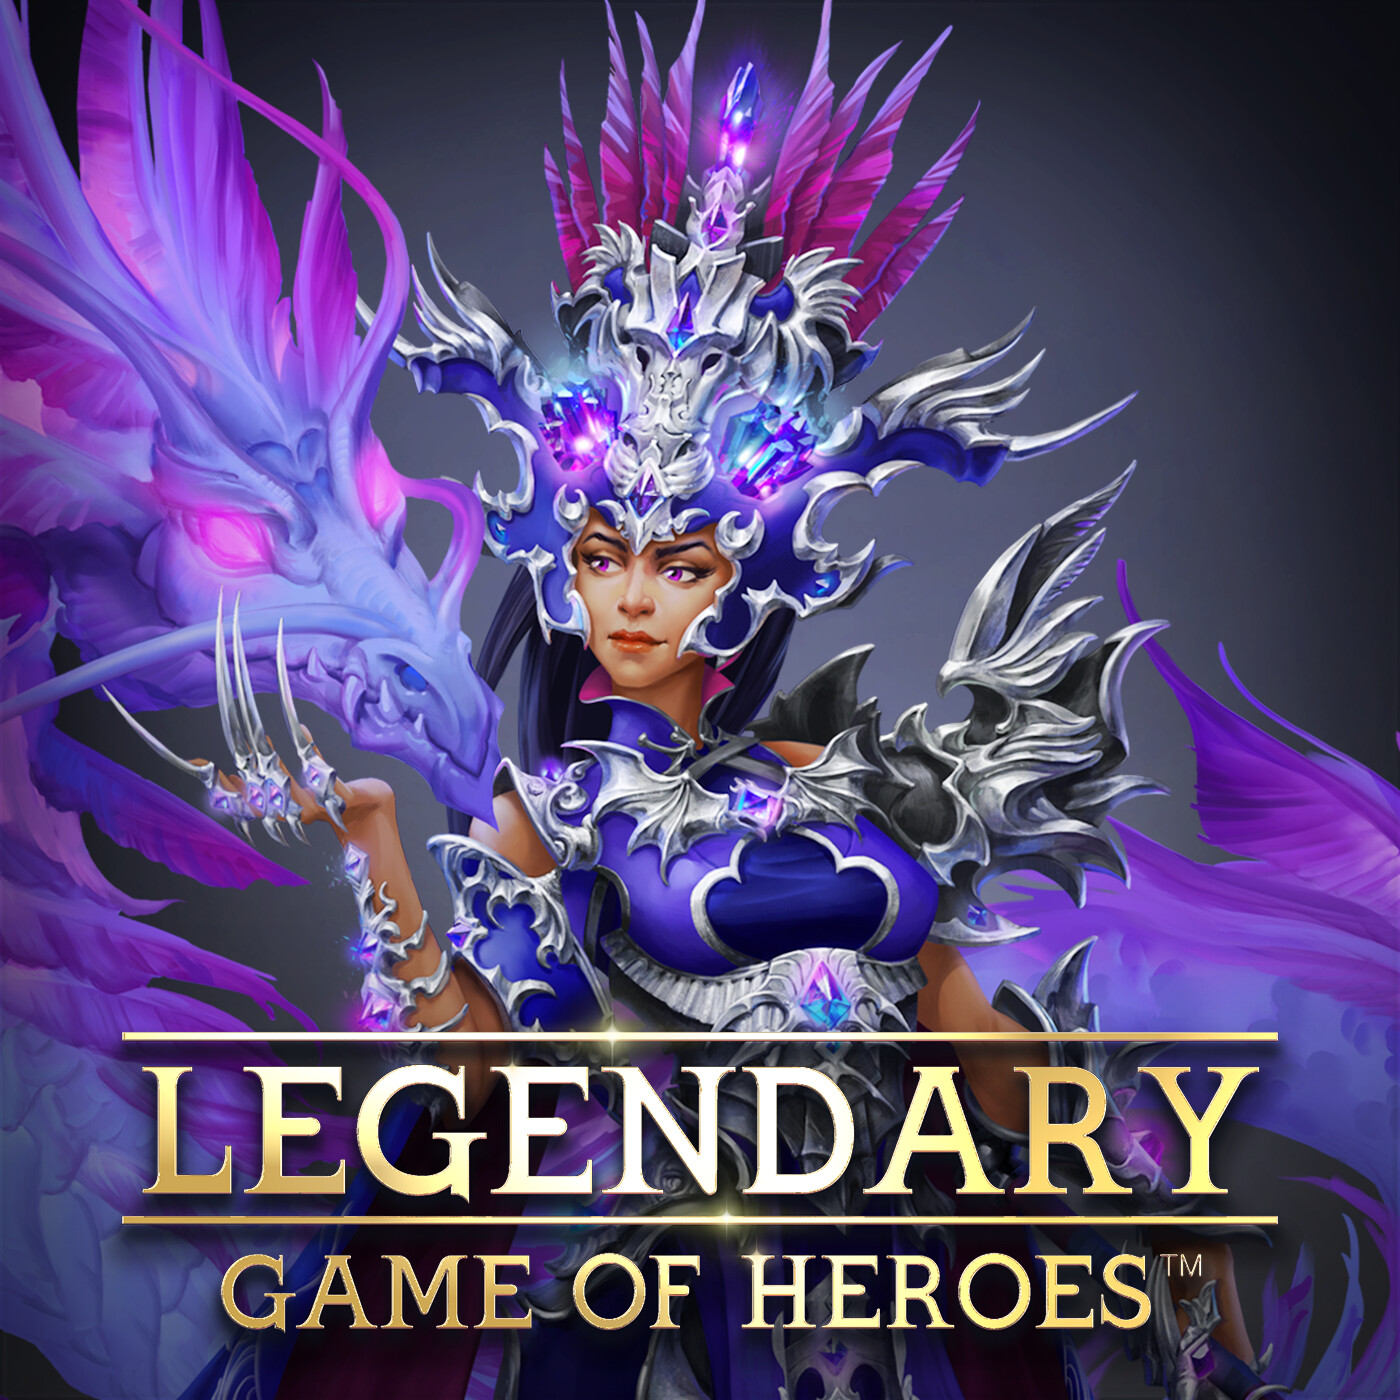 Legendary: Game of Heroes | Nousa the Conjurer